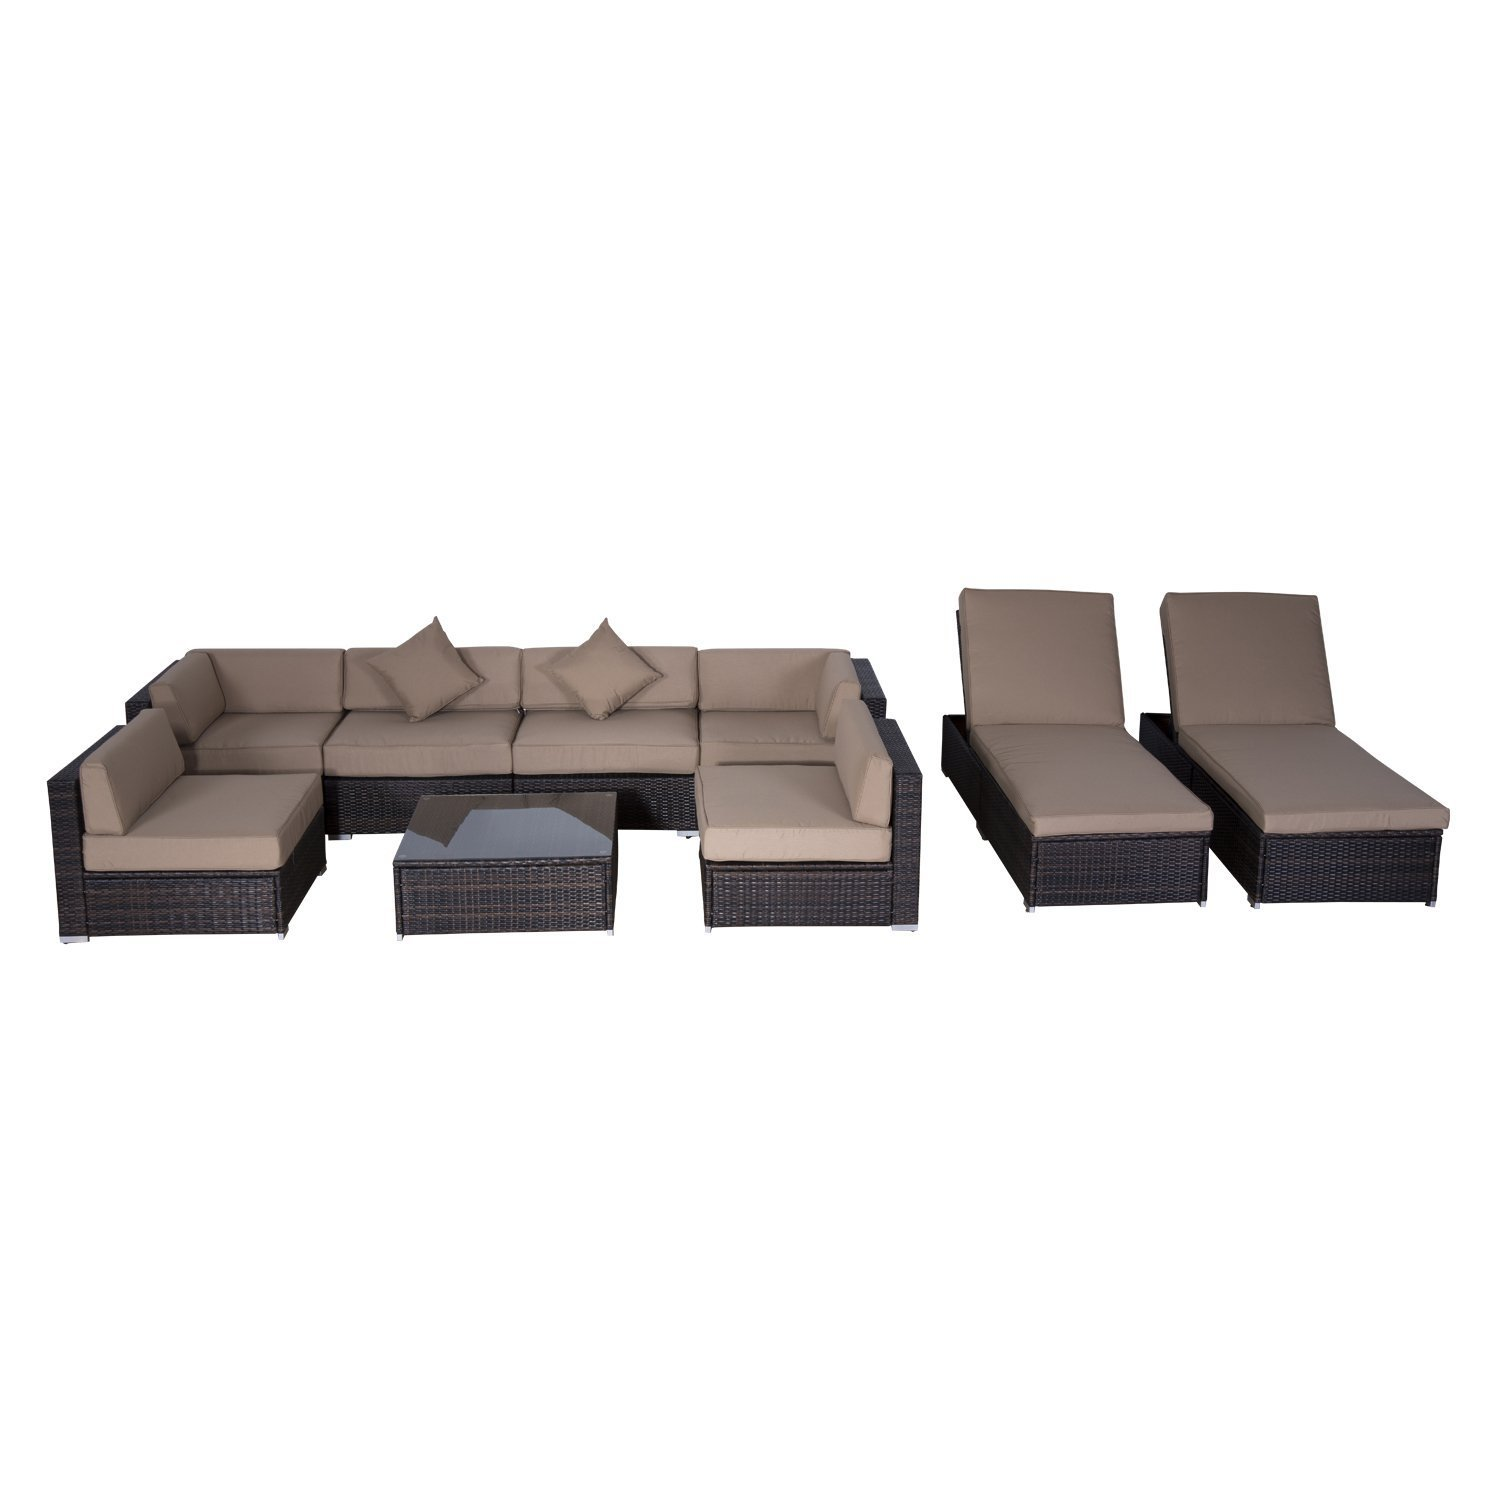 wicker patio furniture set outdoor sofa sectional chaise. Black Bedroom Furniture Sets. Home Design Ideas